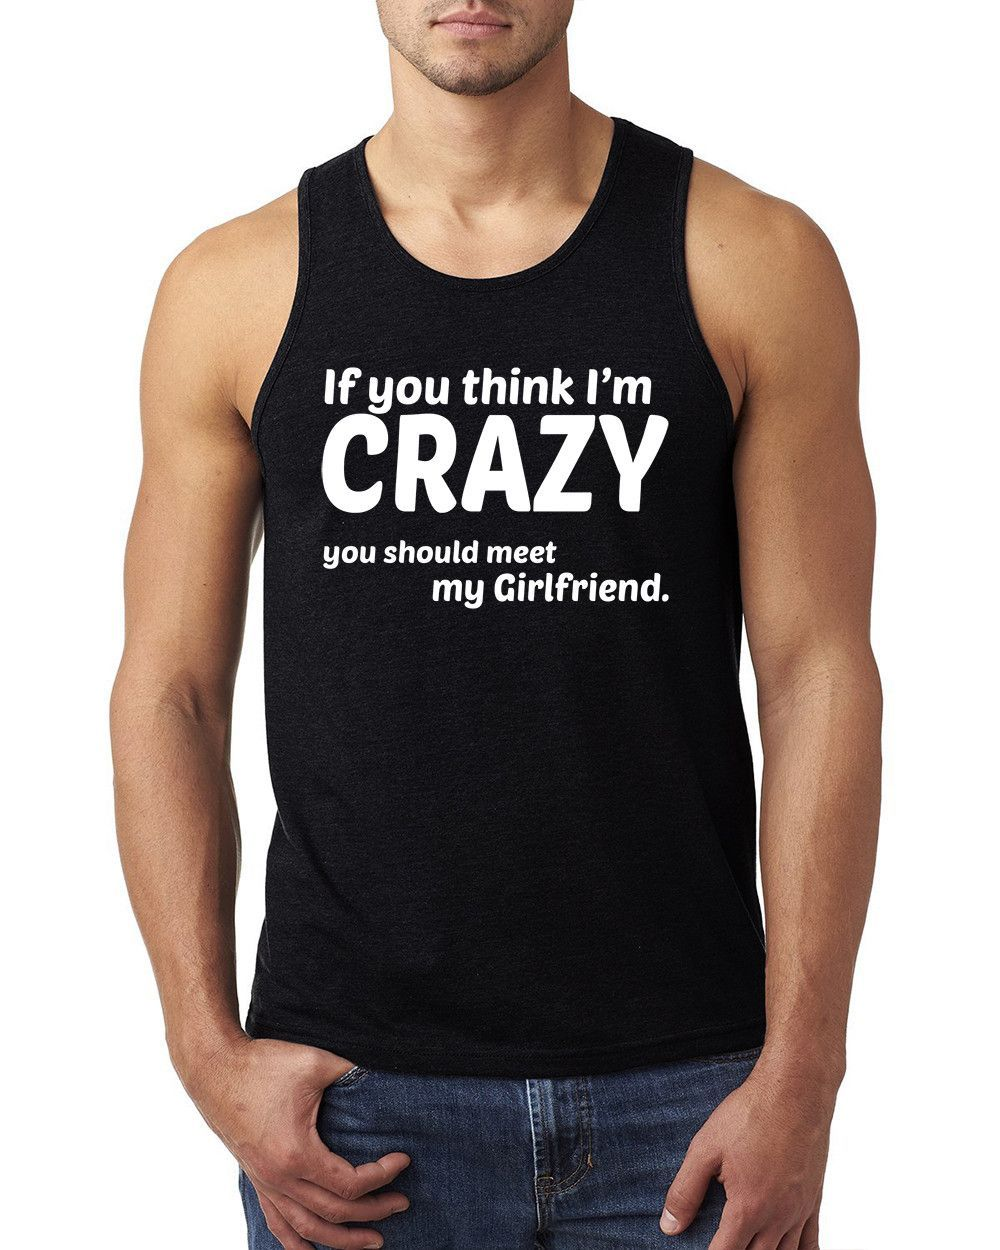 If you think I'm crazy you should meet my girlfriend Tank Top #love #tshirtforgirlfriend #funny #cute